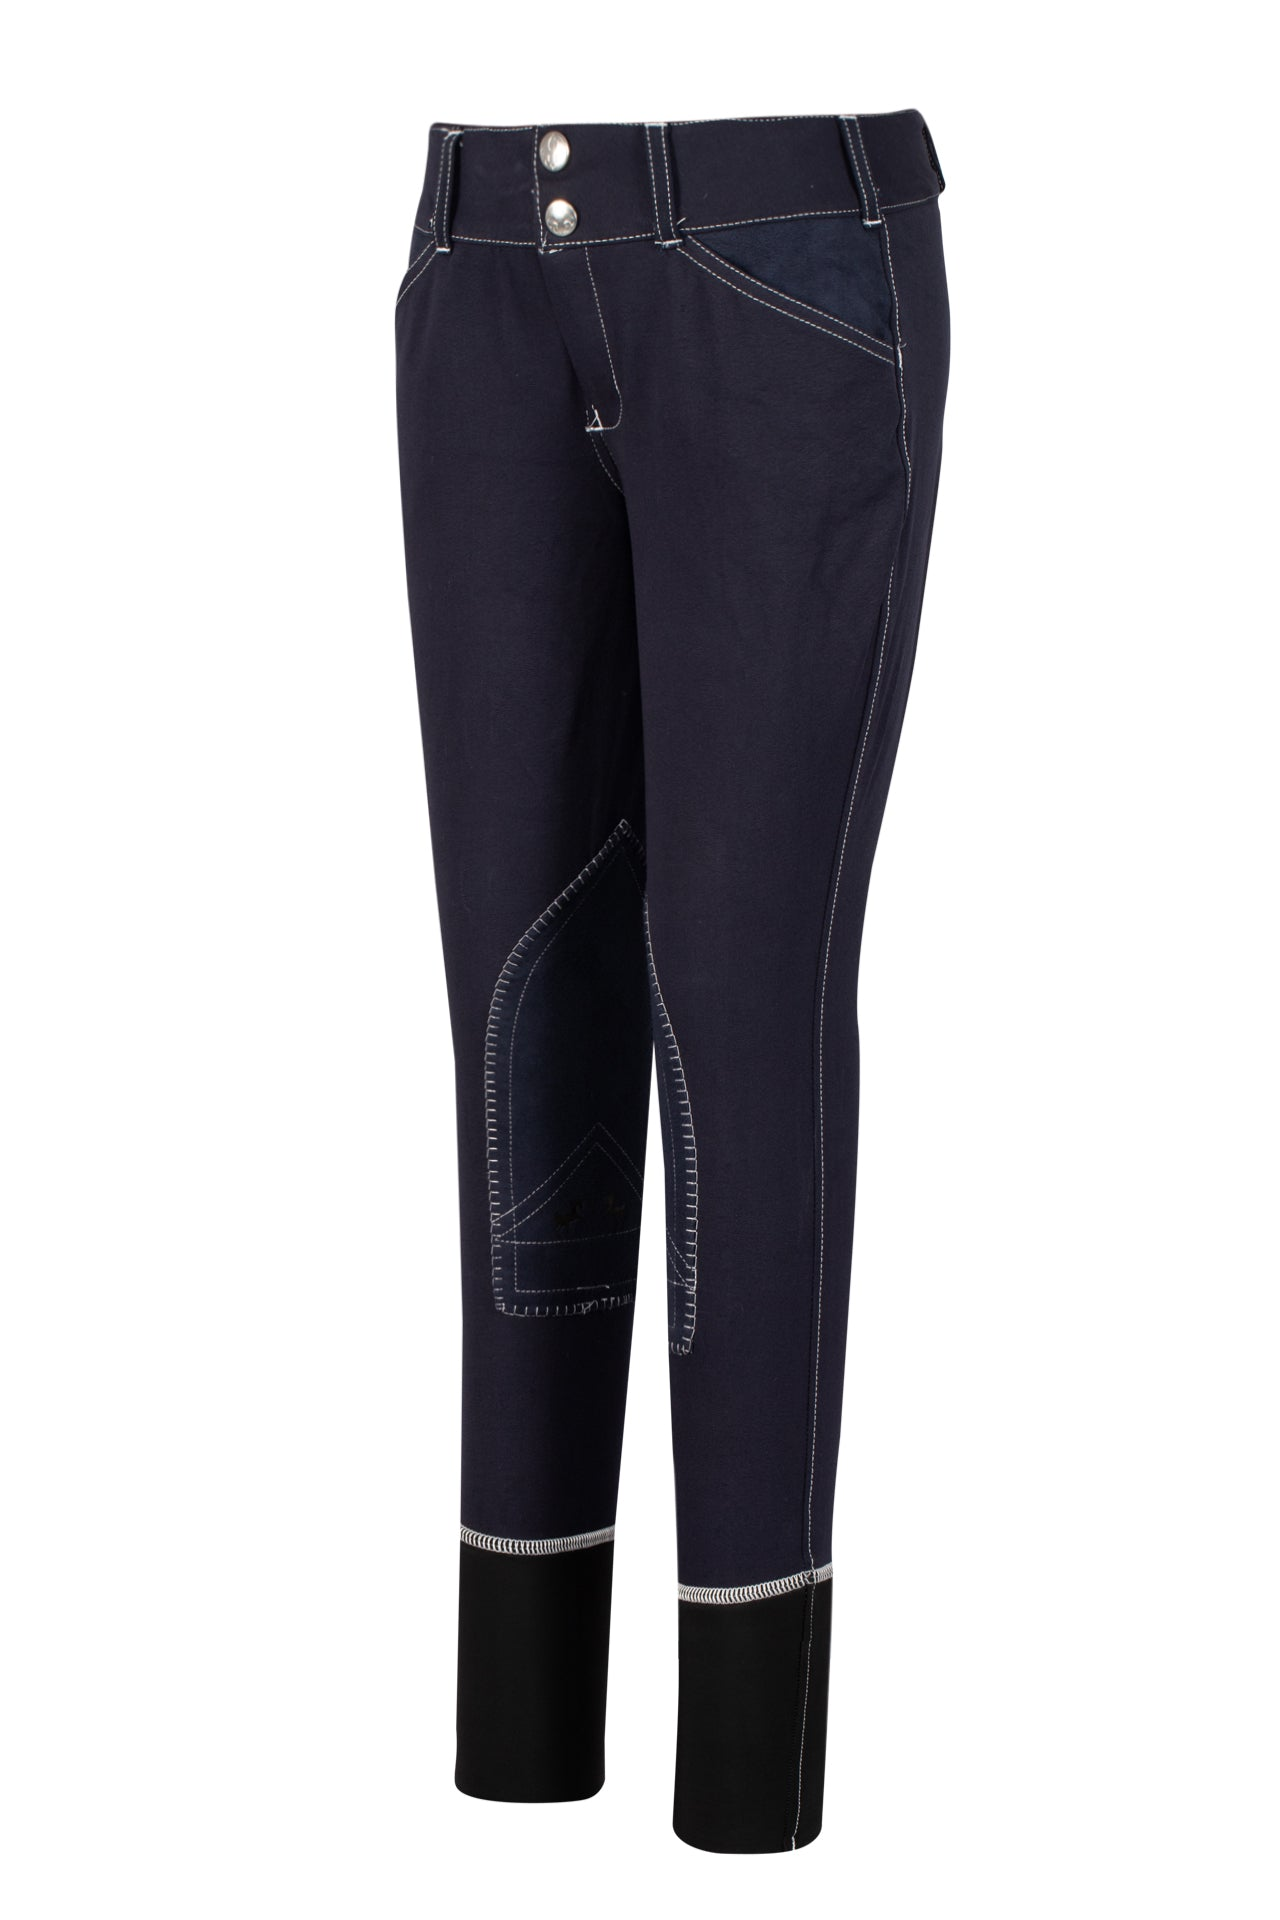 Equine Couture Children's Sportif Natasha Knee Patch Breeches_914